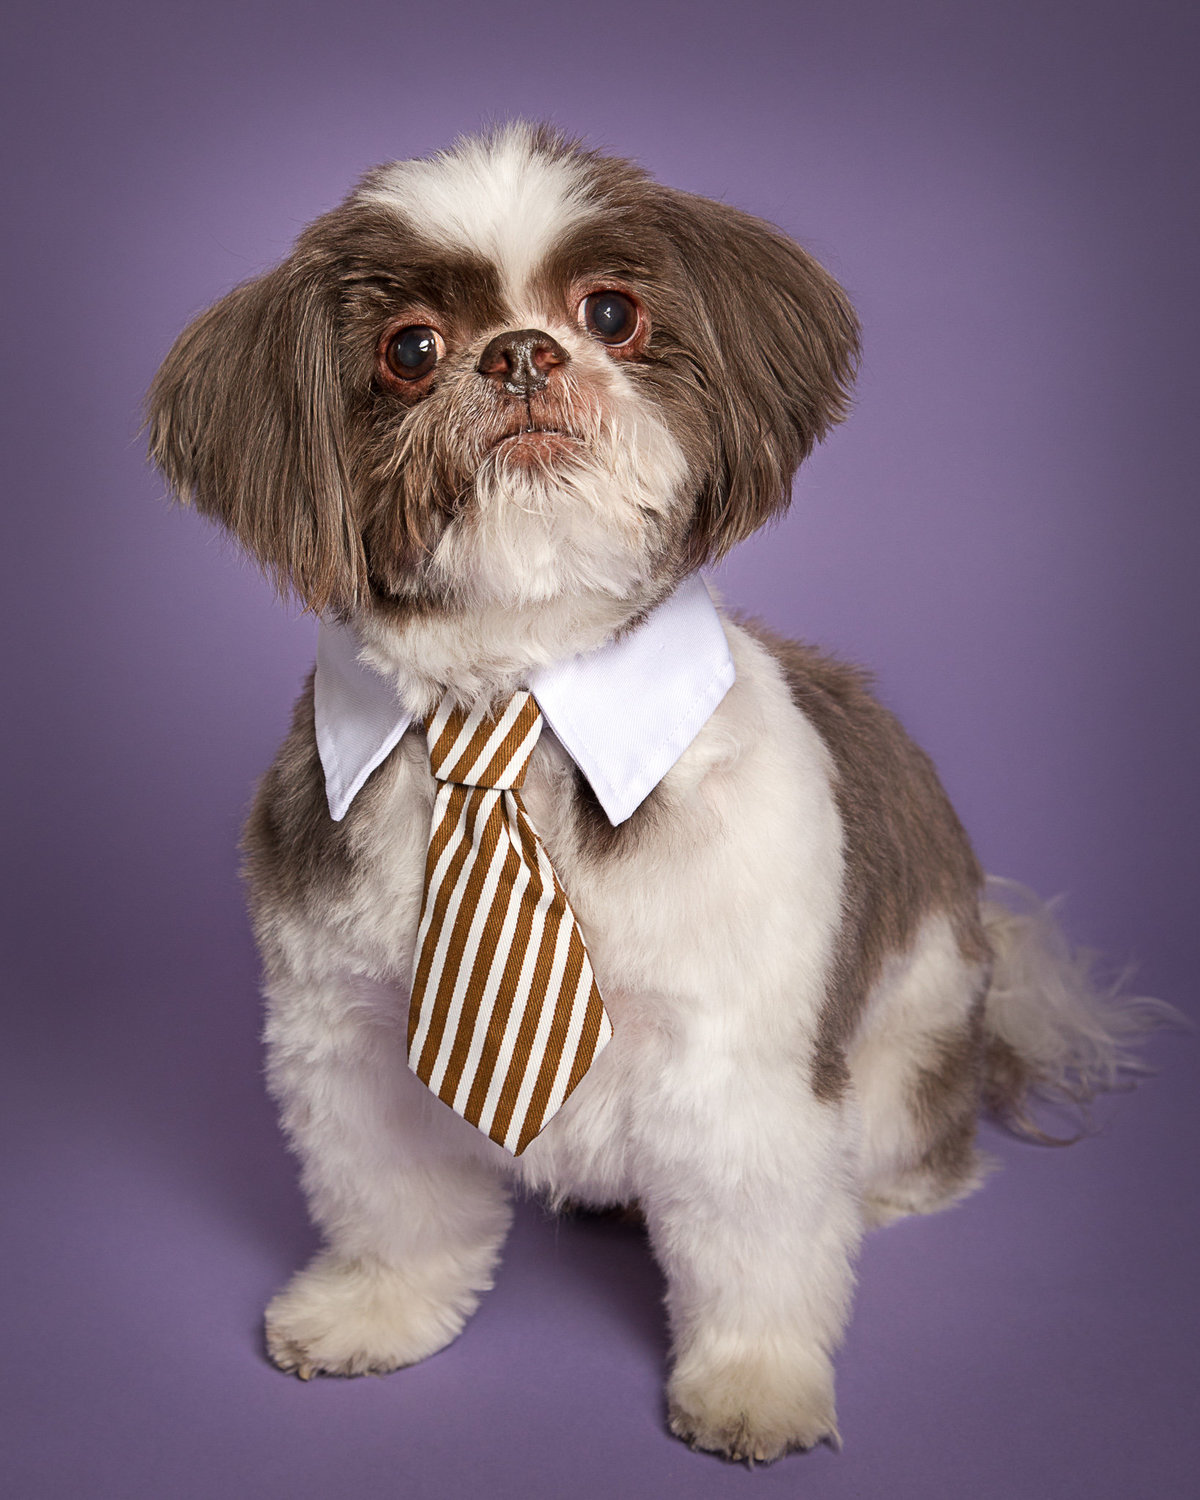 Dog with Tie Collar Picture